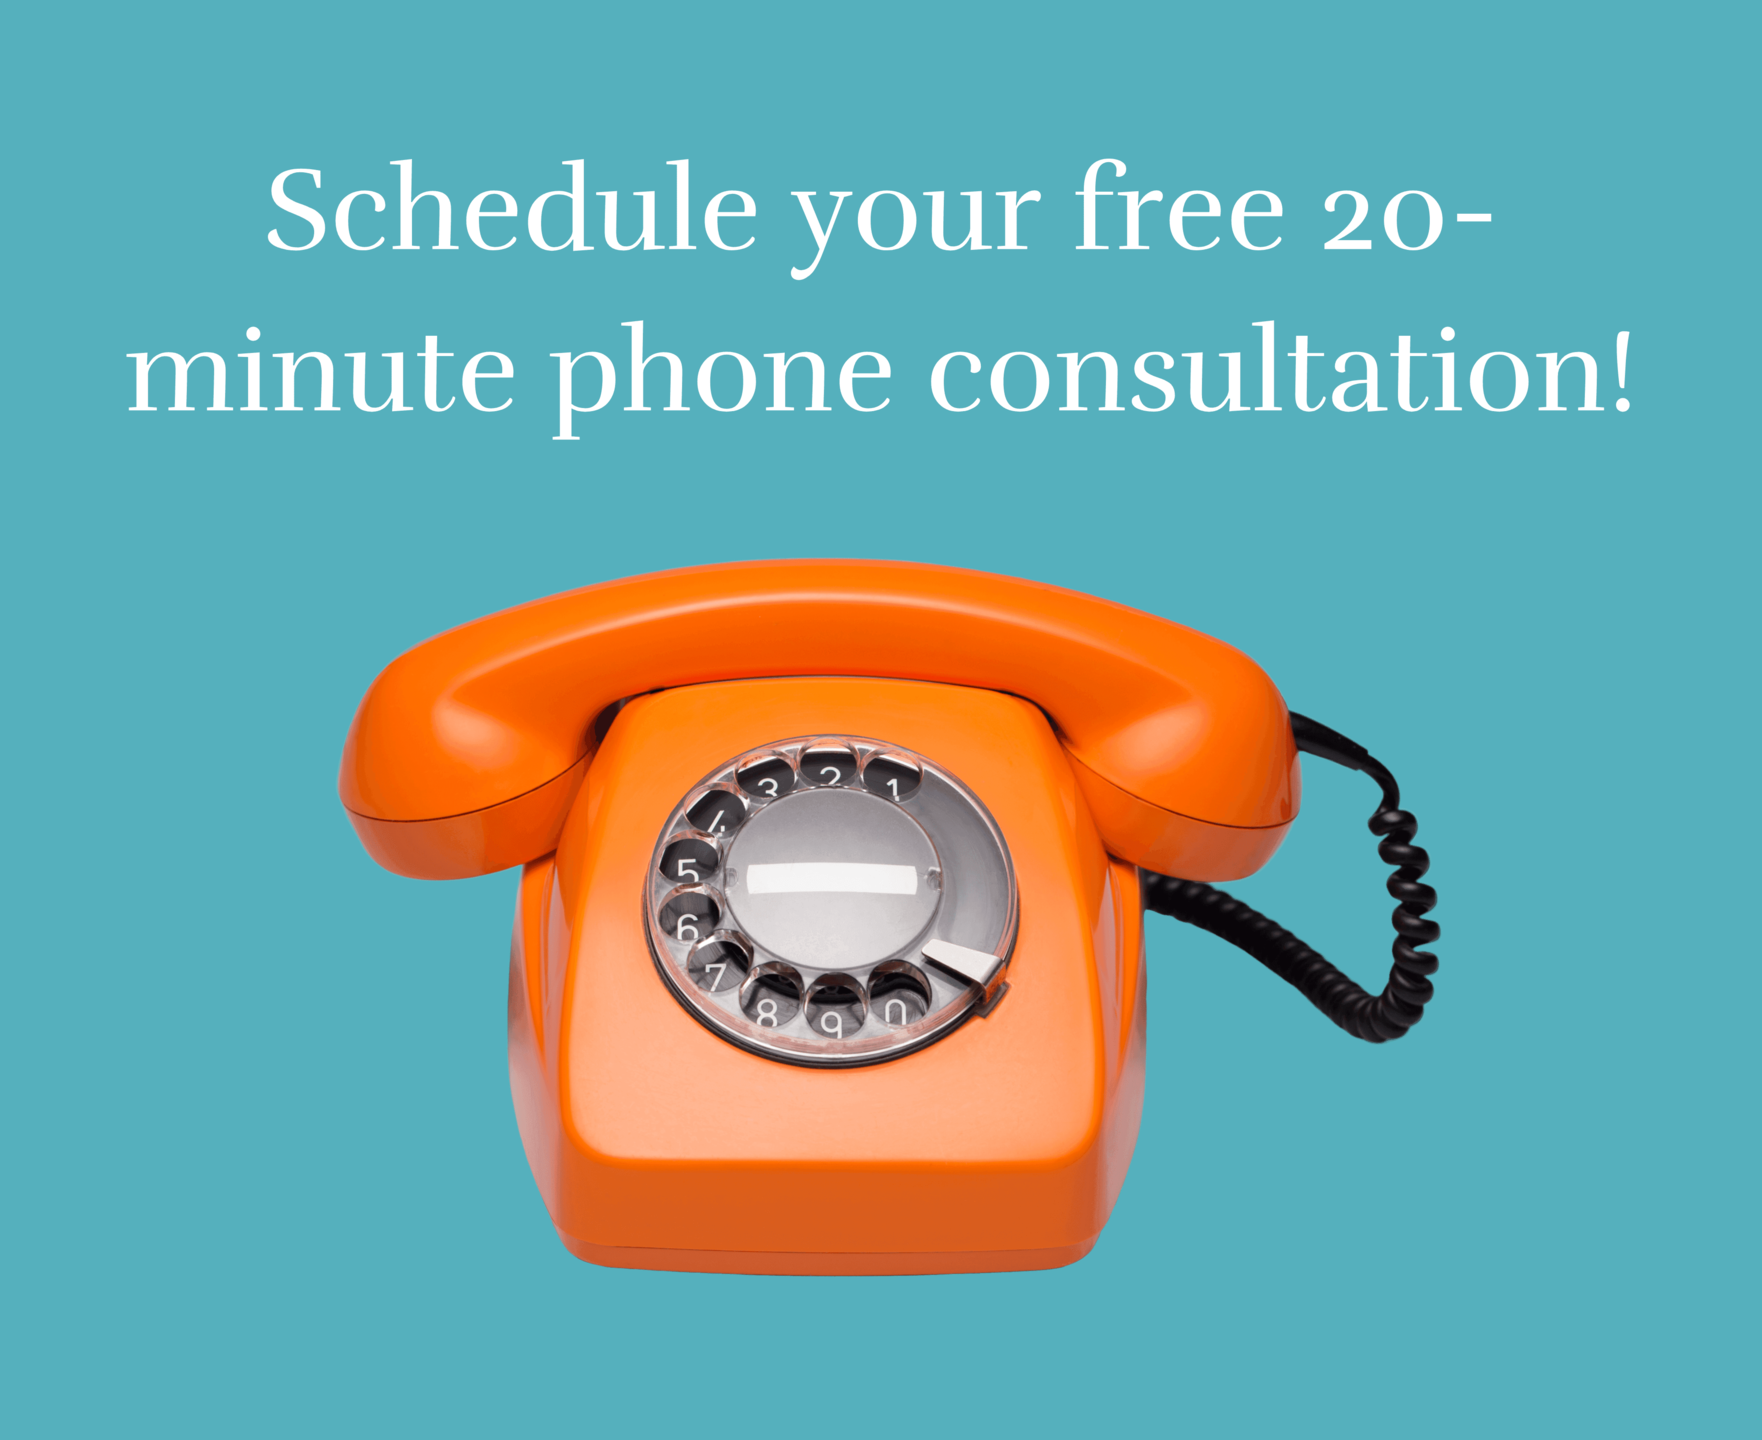 Schedule your free 20-minute phone consultation!